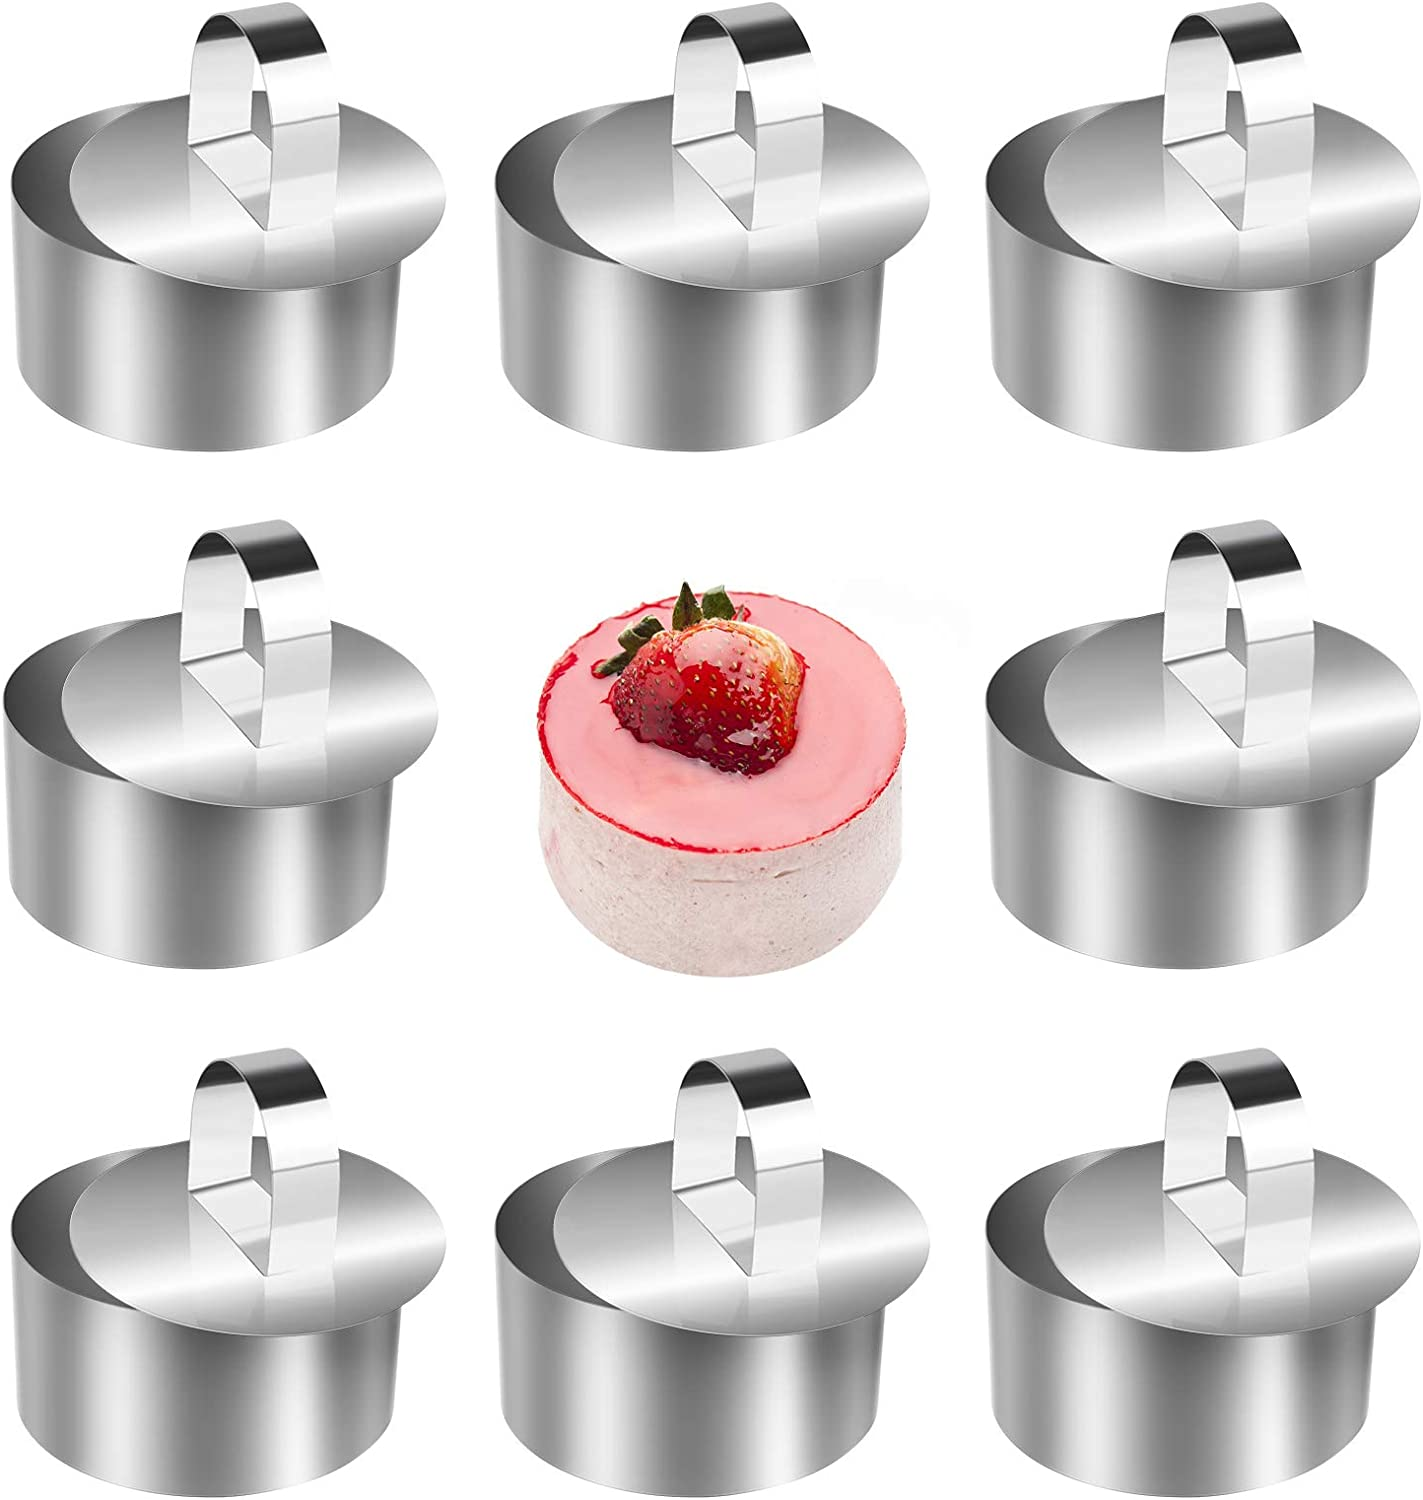 KKUYT Stainless Steel Small Cake Rings, 8 Pcs Round Muffin Pastry Rings Mousse Cake Mold for Baking, 3.15